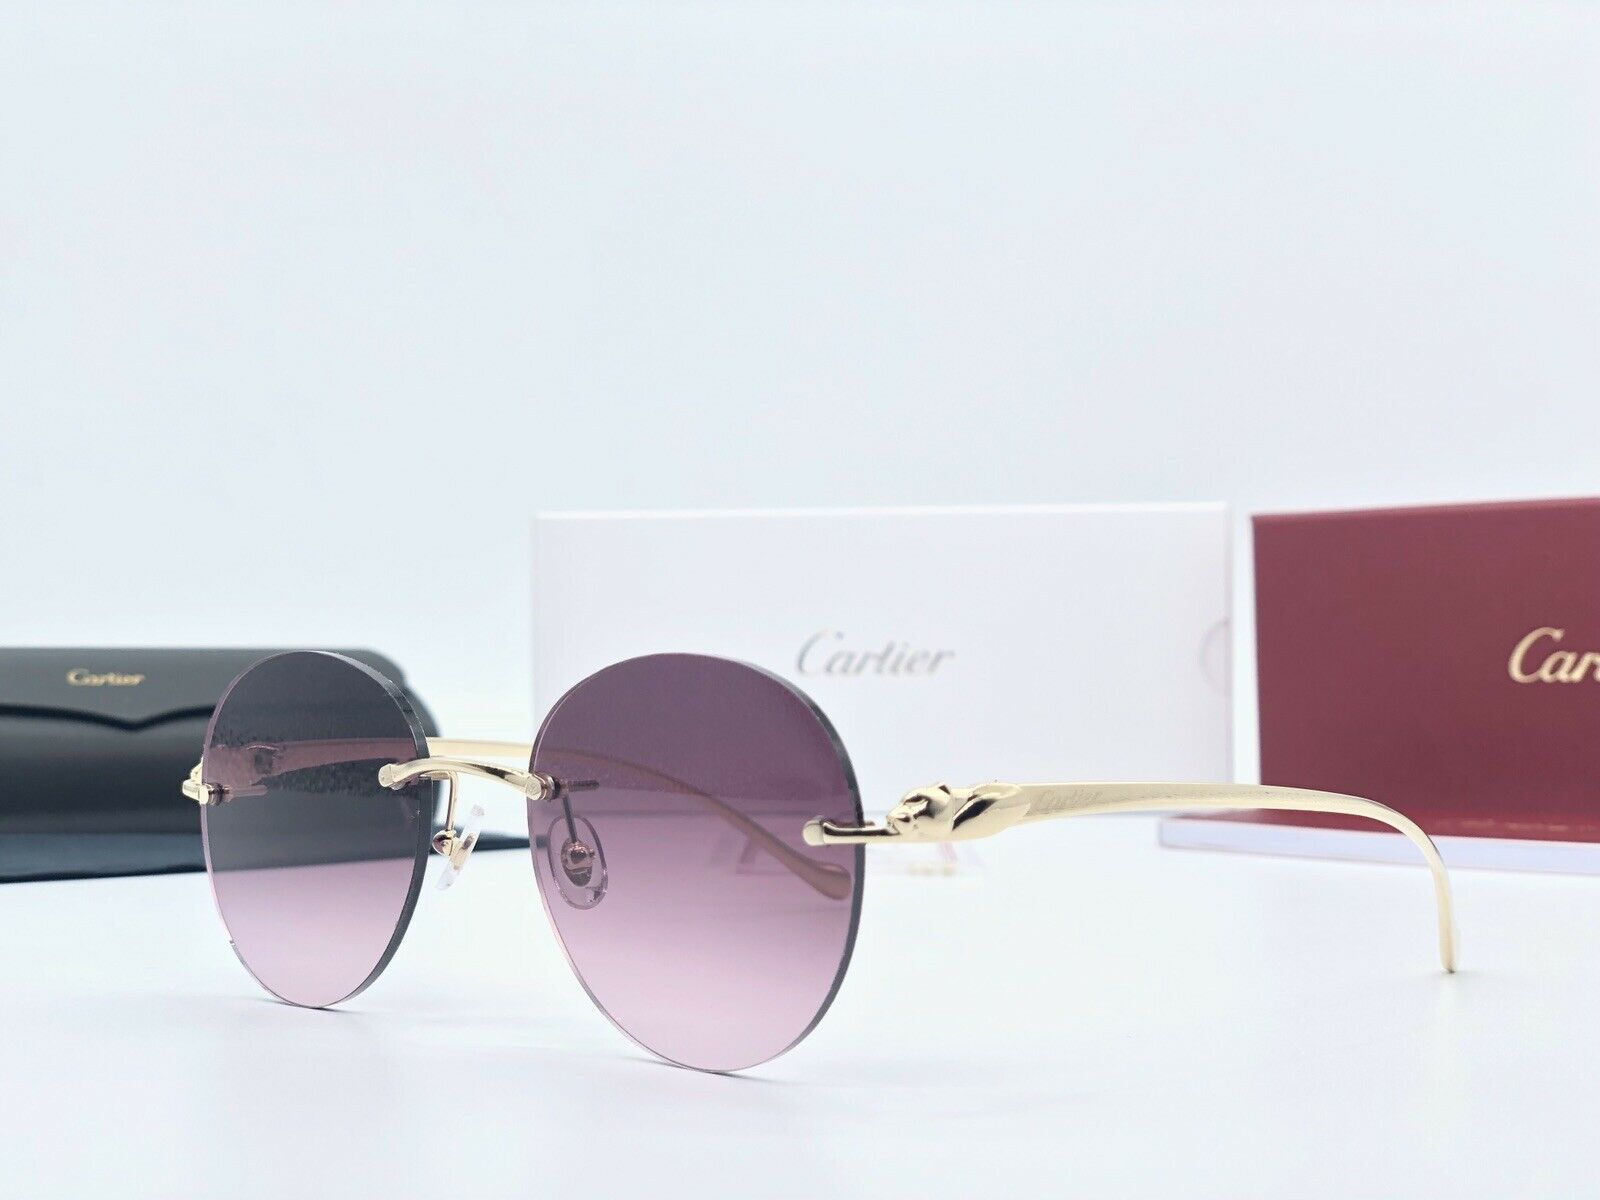 lo último bbcf9 608a7 Sunglasses Cartier Panthere Altaica CT0058O-002 Gold with Round Lenses 100%  Auth